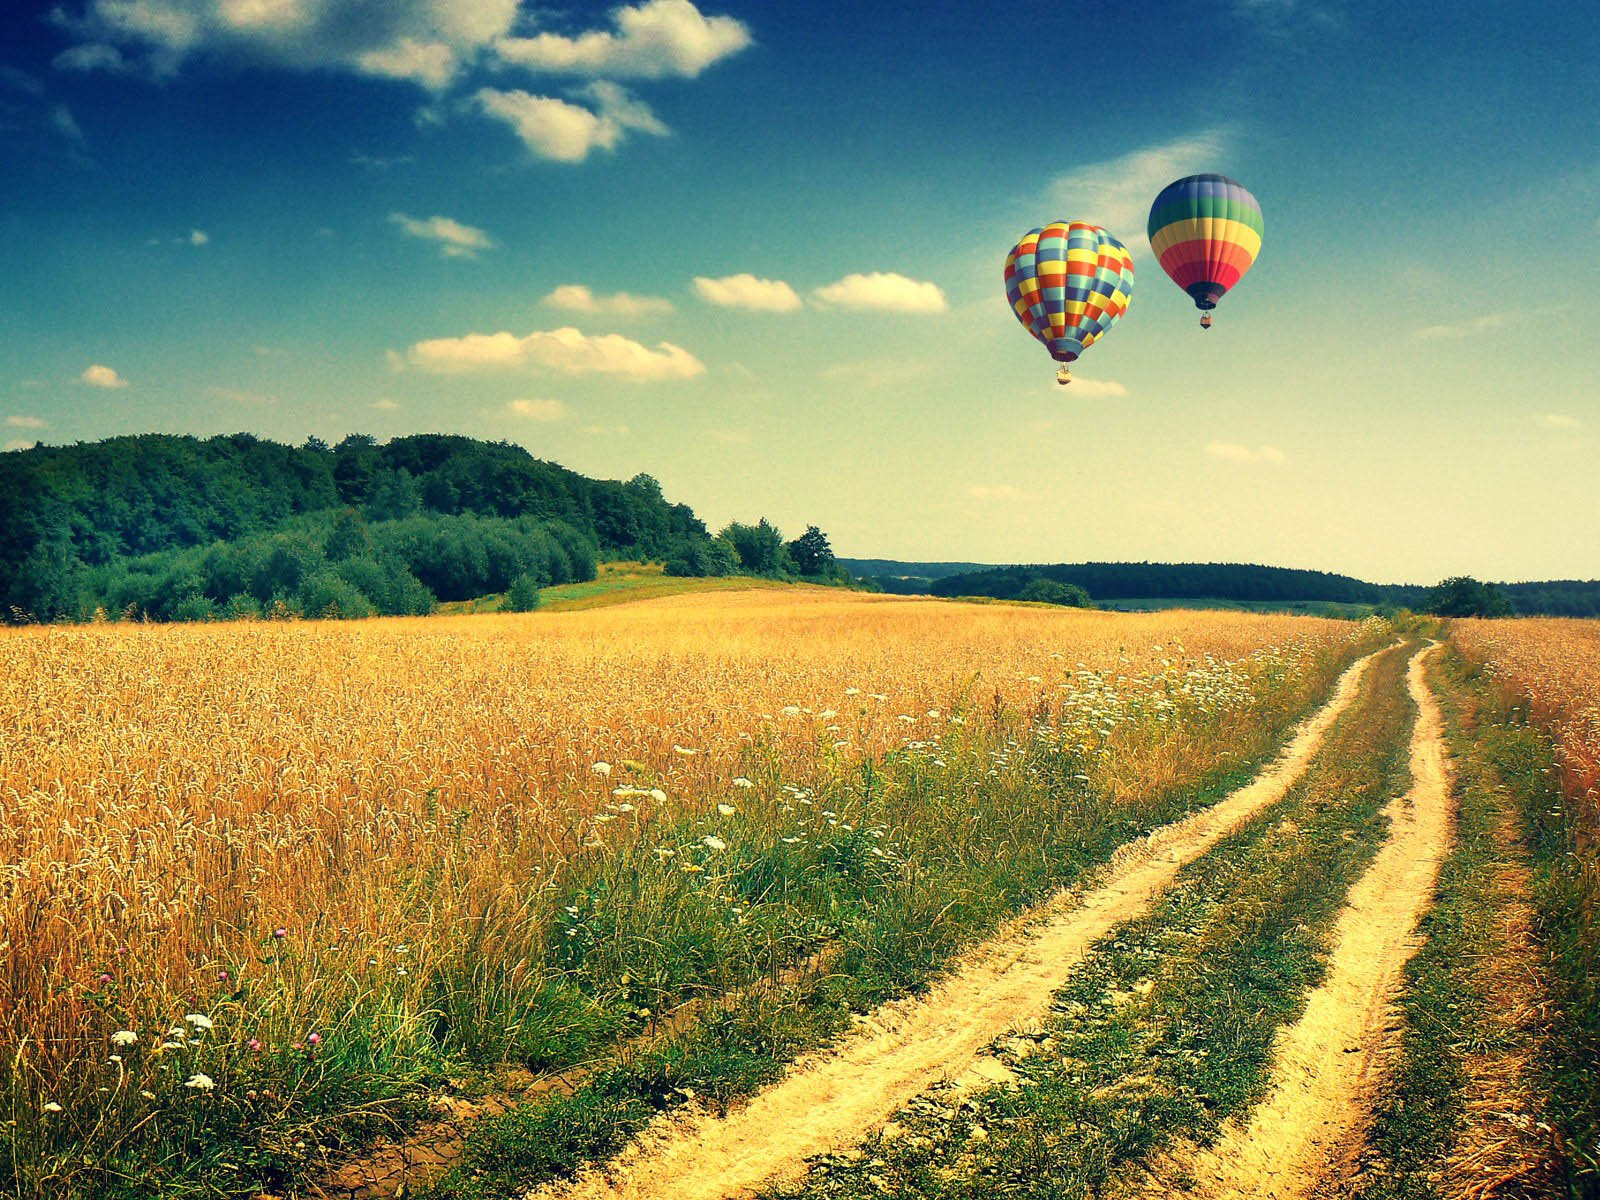 Tag Hot Air Balloons Wallpapers BackgroundsPhotos Images and 1600x1200